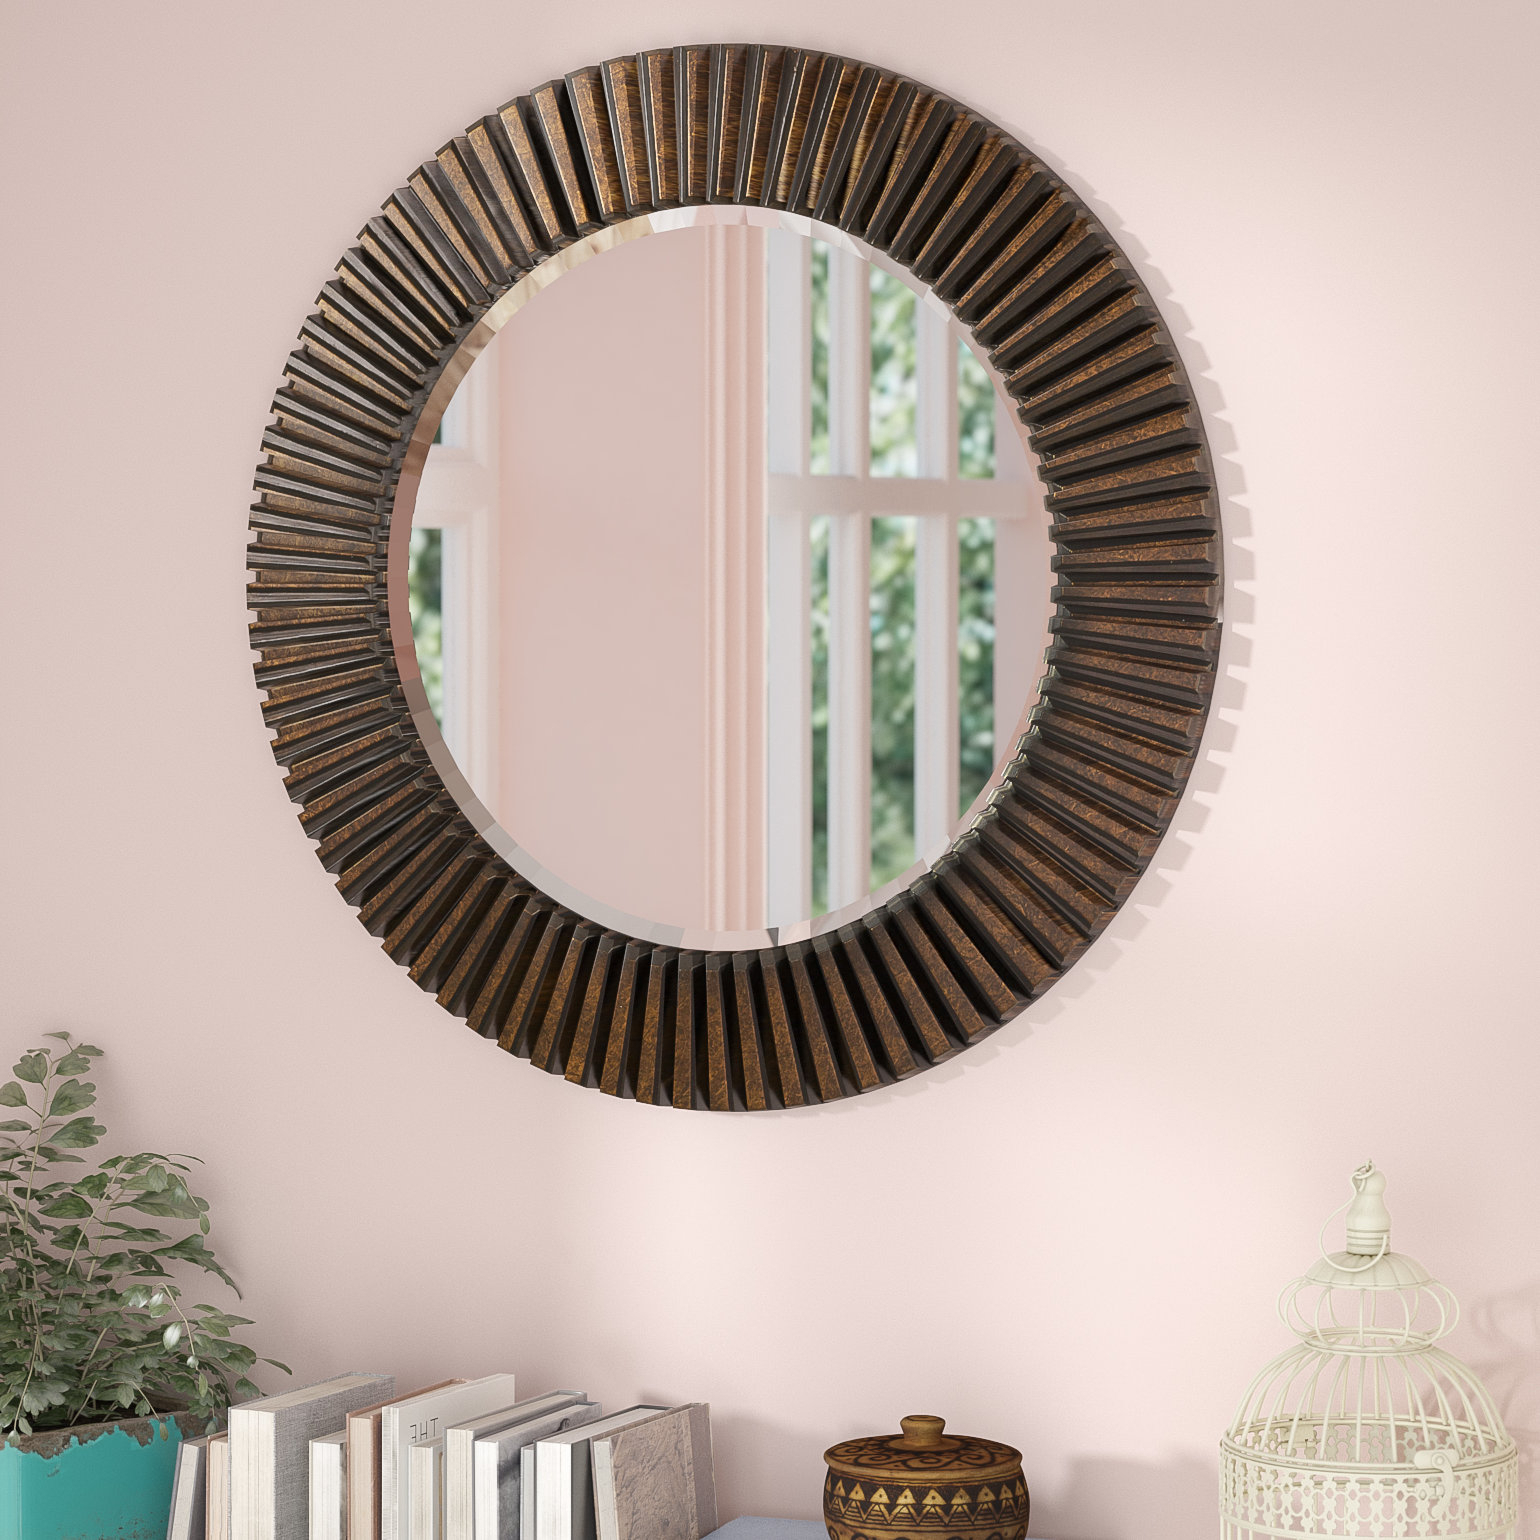 Round Eclectic Accent Mirror Intended For Josephson Starburst Glam Beveled Accent Wall Mirrors (Gallery 21 of 22)